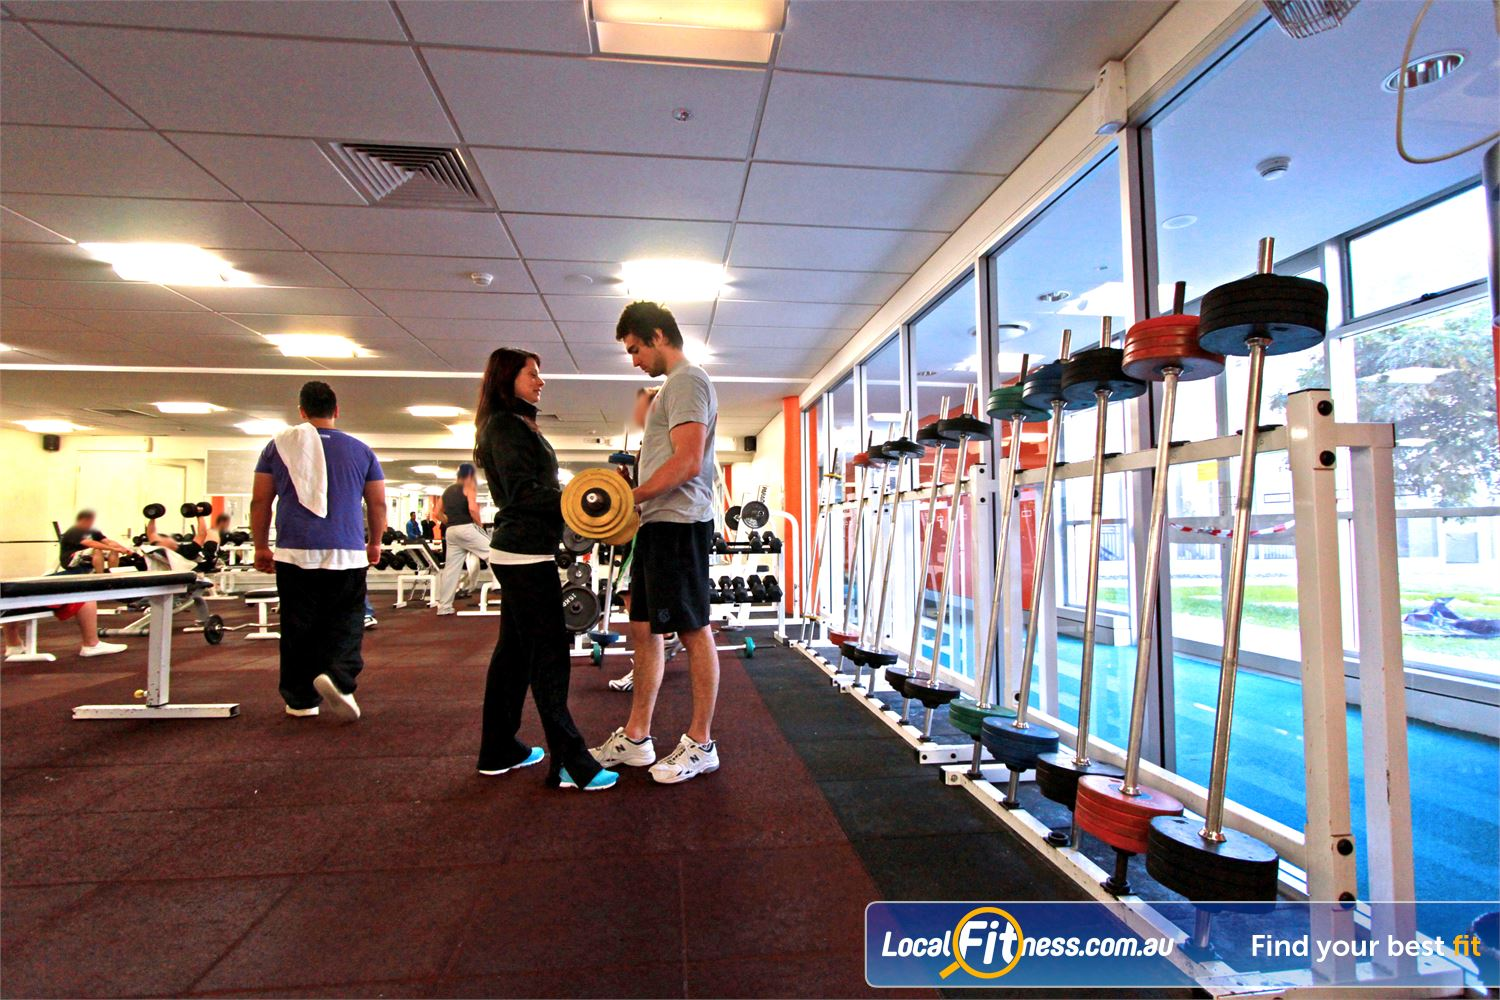 Students lift weights together in the gym